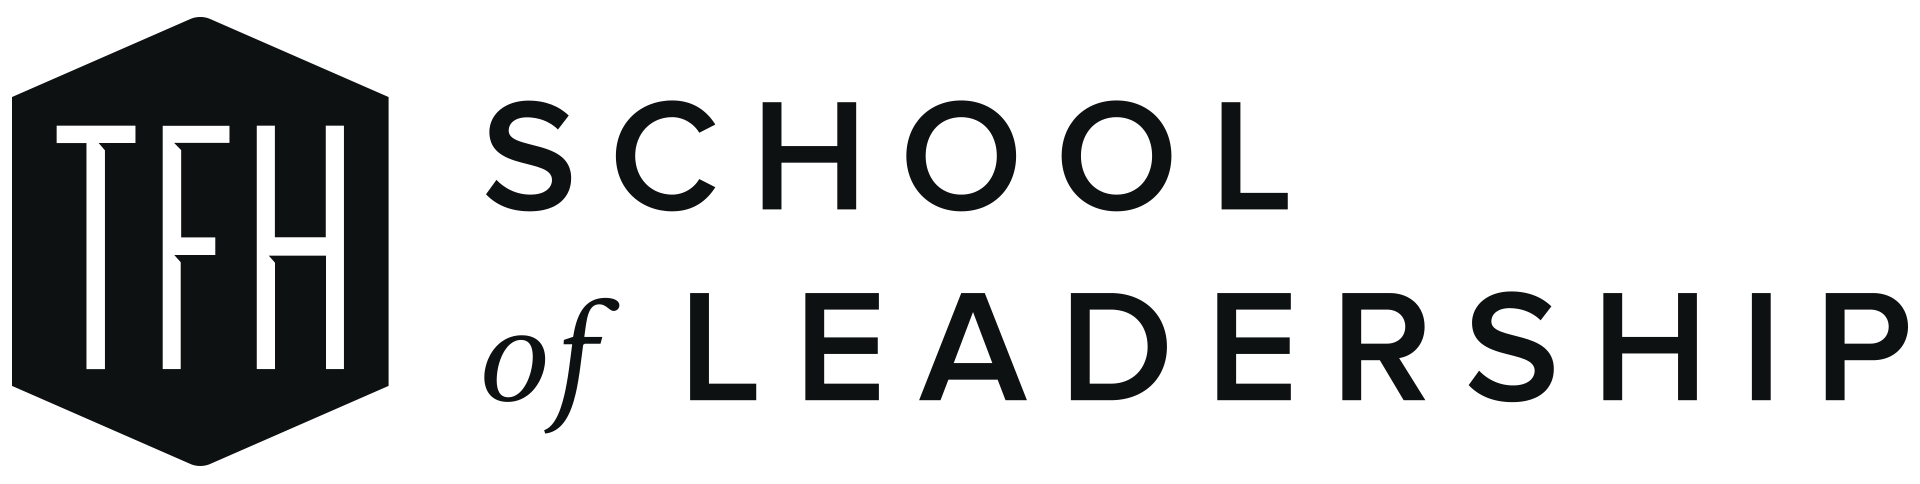 TFH School of Leadership